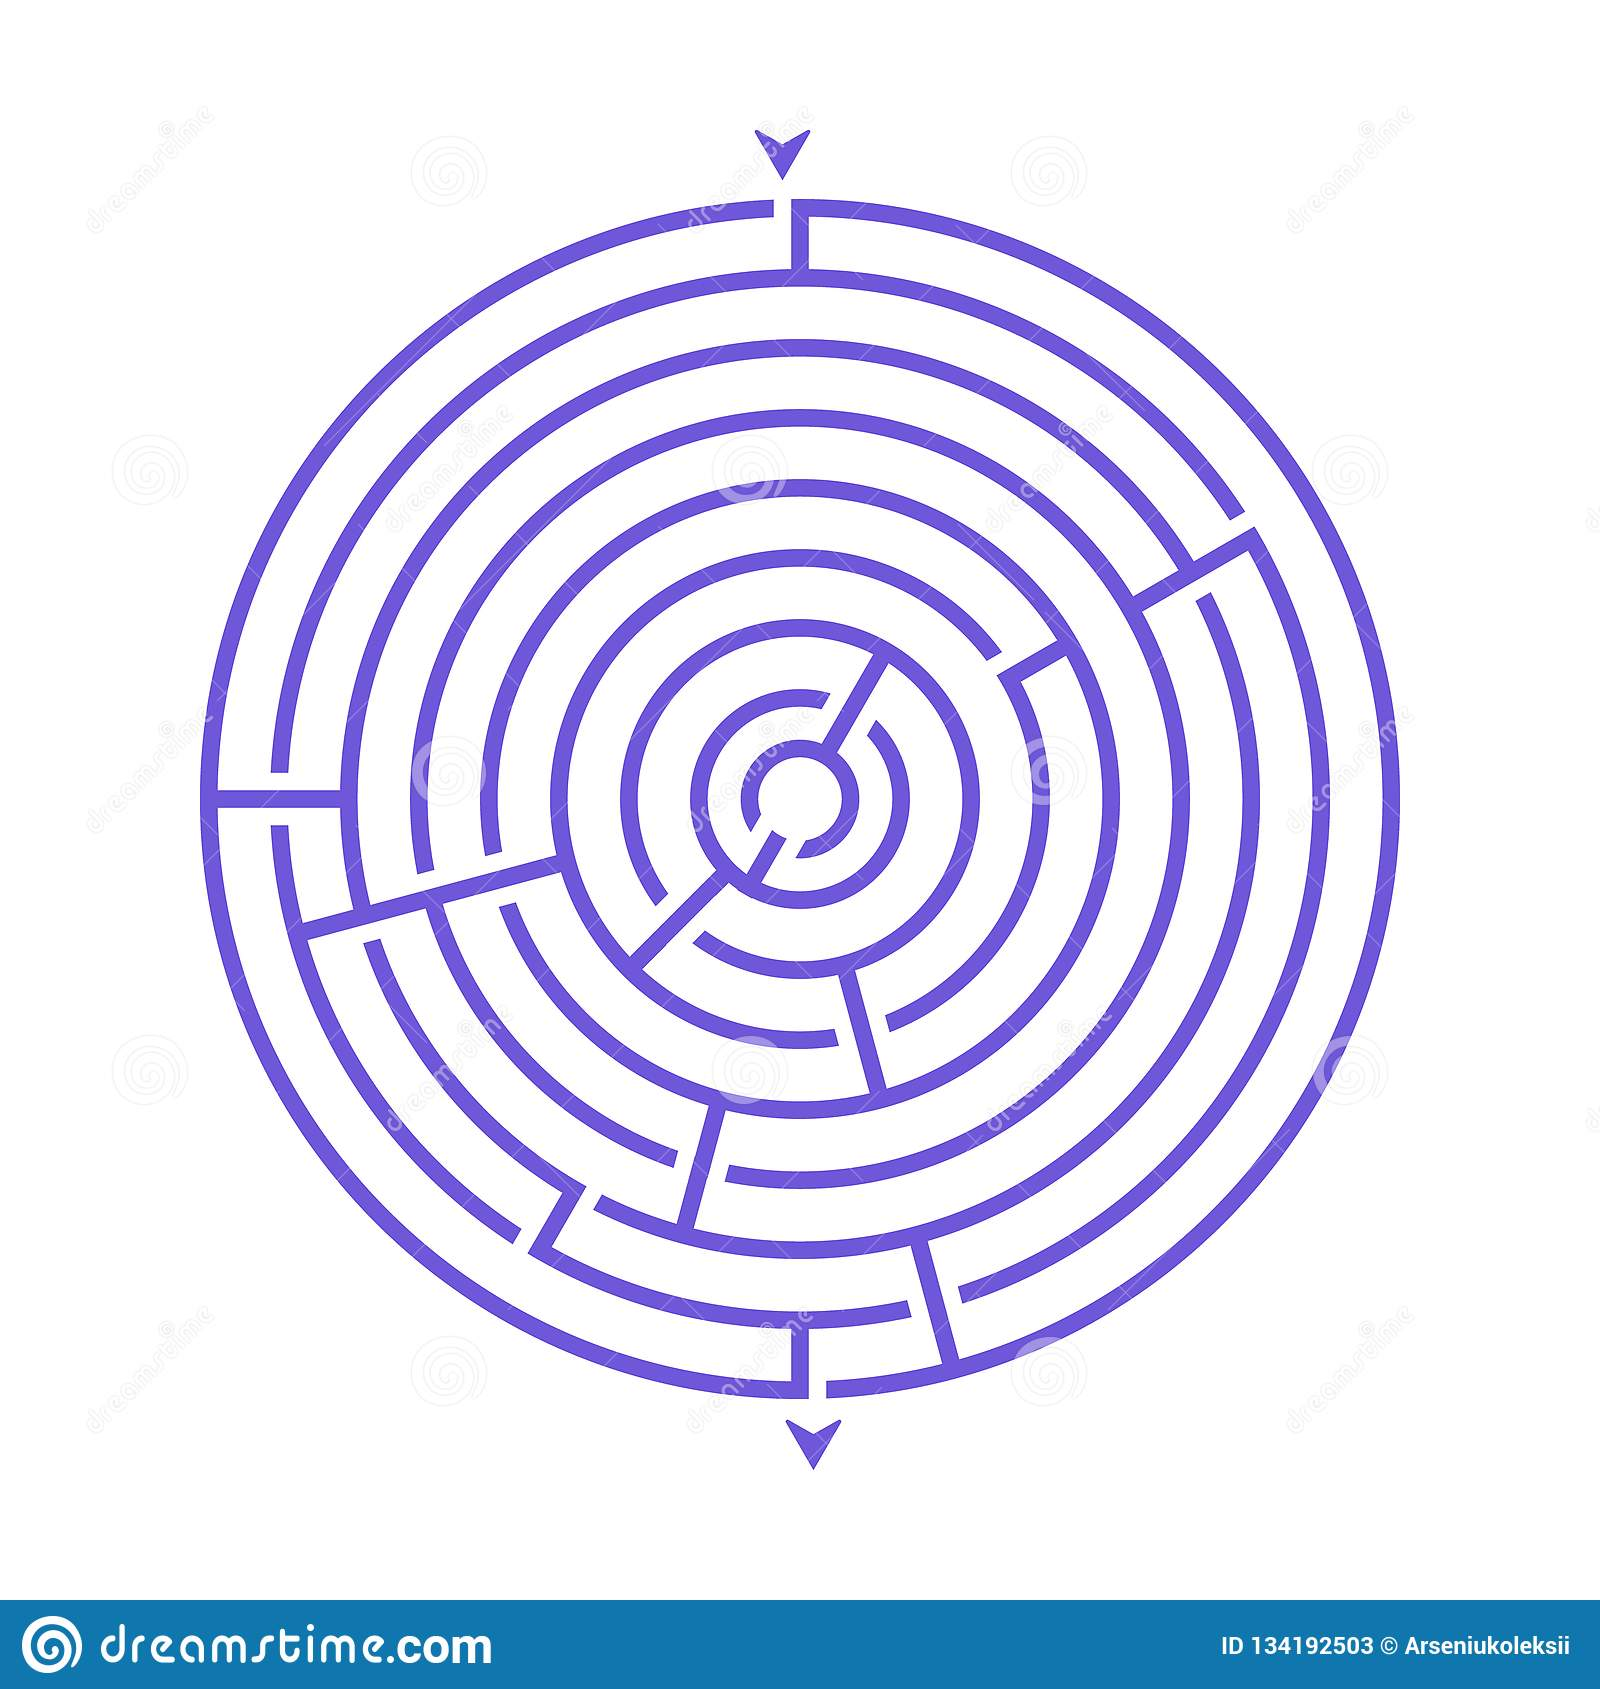 Simple Round Maze Labyrinth Game For Kids One Of The Puzzles From